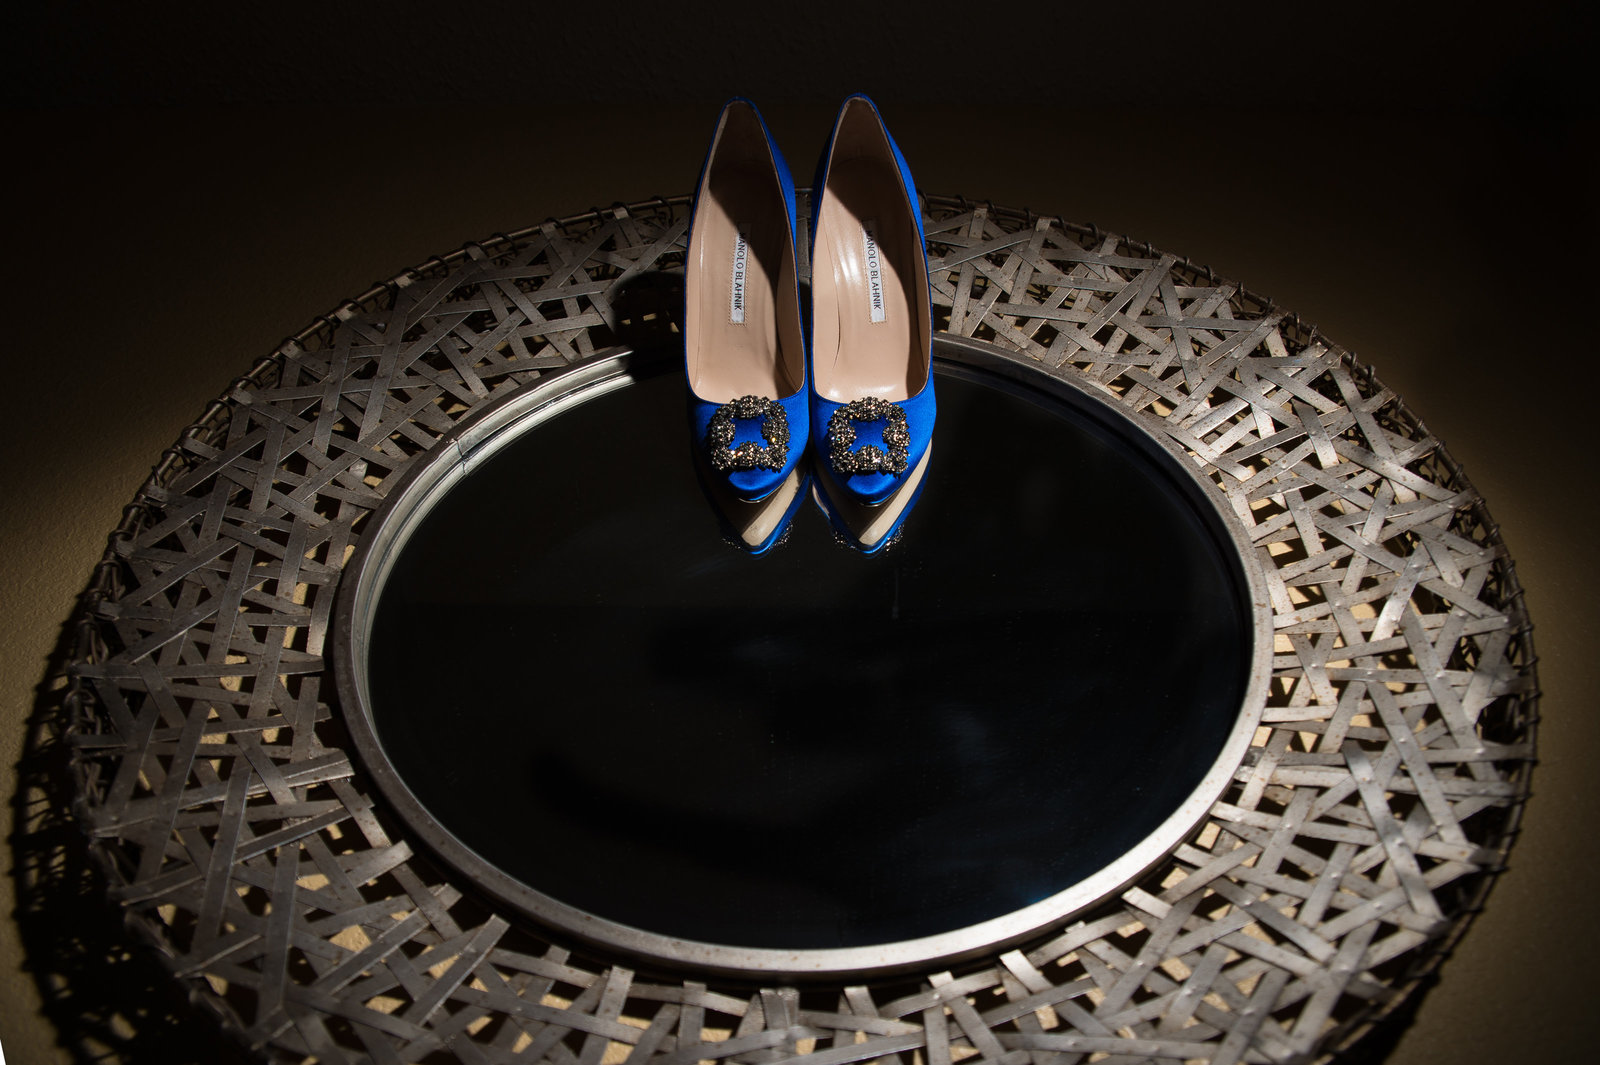 Milano_Blahnik_Wedding_Shoes-1 copy